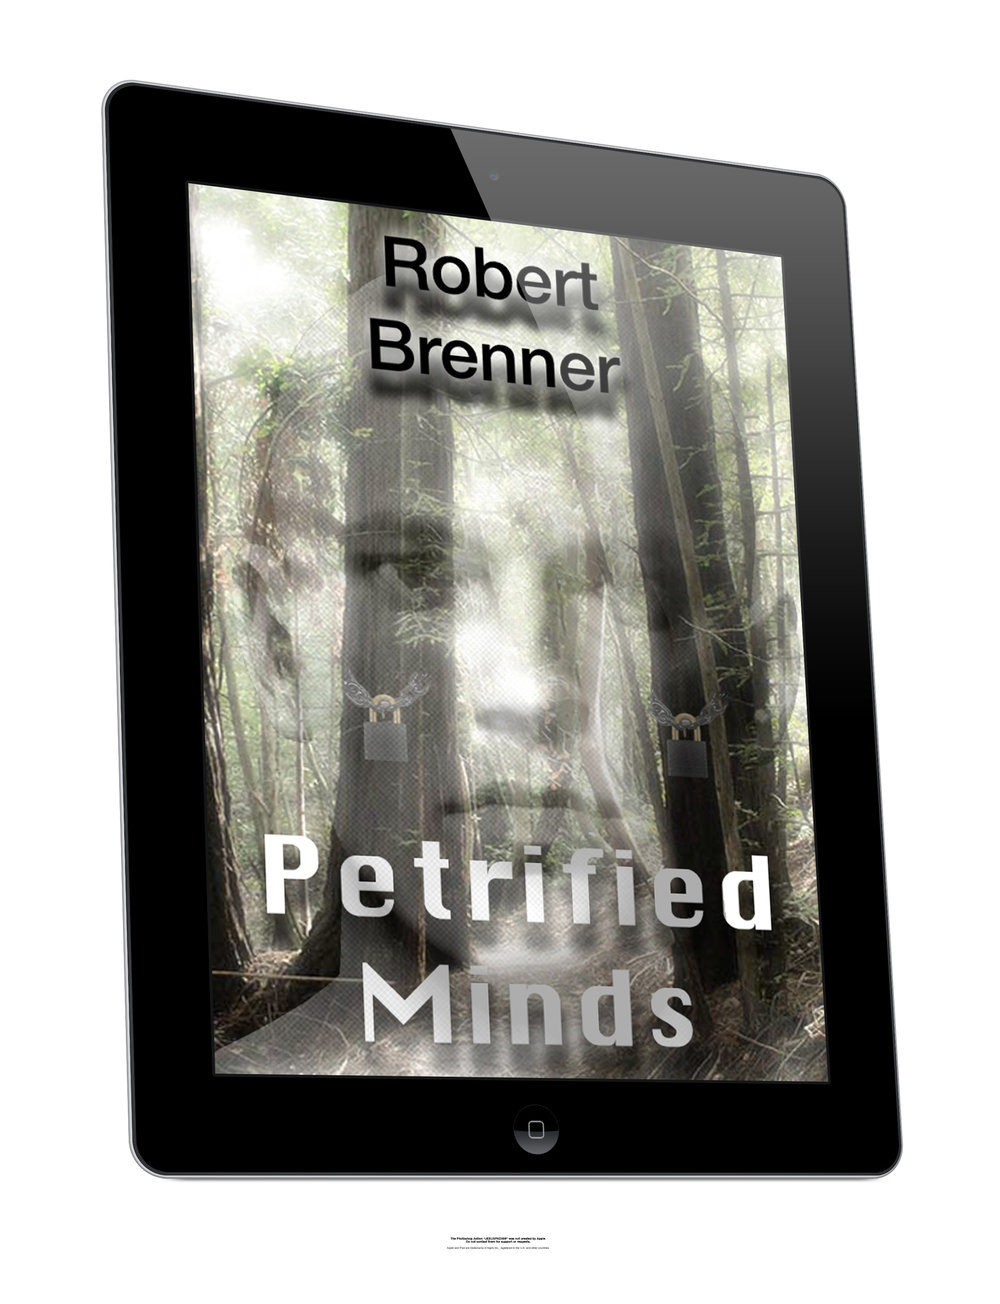 Petrified Minds, Robert Brenner's cornerstone book of his Glenn Rice Cozy, Suspense Mystery Series, chronicles hypnosis therapy sessions relating to three patients—one battles IBS, the other, asthma and personal assault, and the third fears flying and travel. Brenner digs deeply into their petrified, subconscious minds, allowing readers to delve with him into the root causes of his patients' emotional responses. Never knowing what to expect, each hypnosis session is different as Brenner searches to understand experiences from his patients' pasts—experiences preventing them from blossoming into the people they're meant to be.Written in a delightful, cozy mystery style, Petrified Minds couples non-fiction with fiction—the situations, therapy, and results are real. Each patient suffers from a petrified mind, or mental paralysis inhibiting living normal lives—each knowing they couldn't continue without help. Without change. Without courage. But . . . hypnosis? Really? Not something they previously considered. Each, however, decided on self-help by contacting world-renown hypnotist, Robert Brenner. It was a decision that would change their lives. -